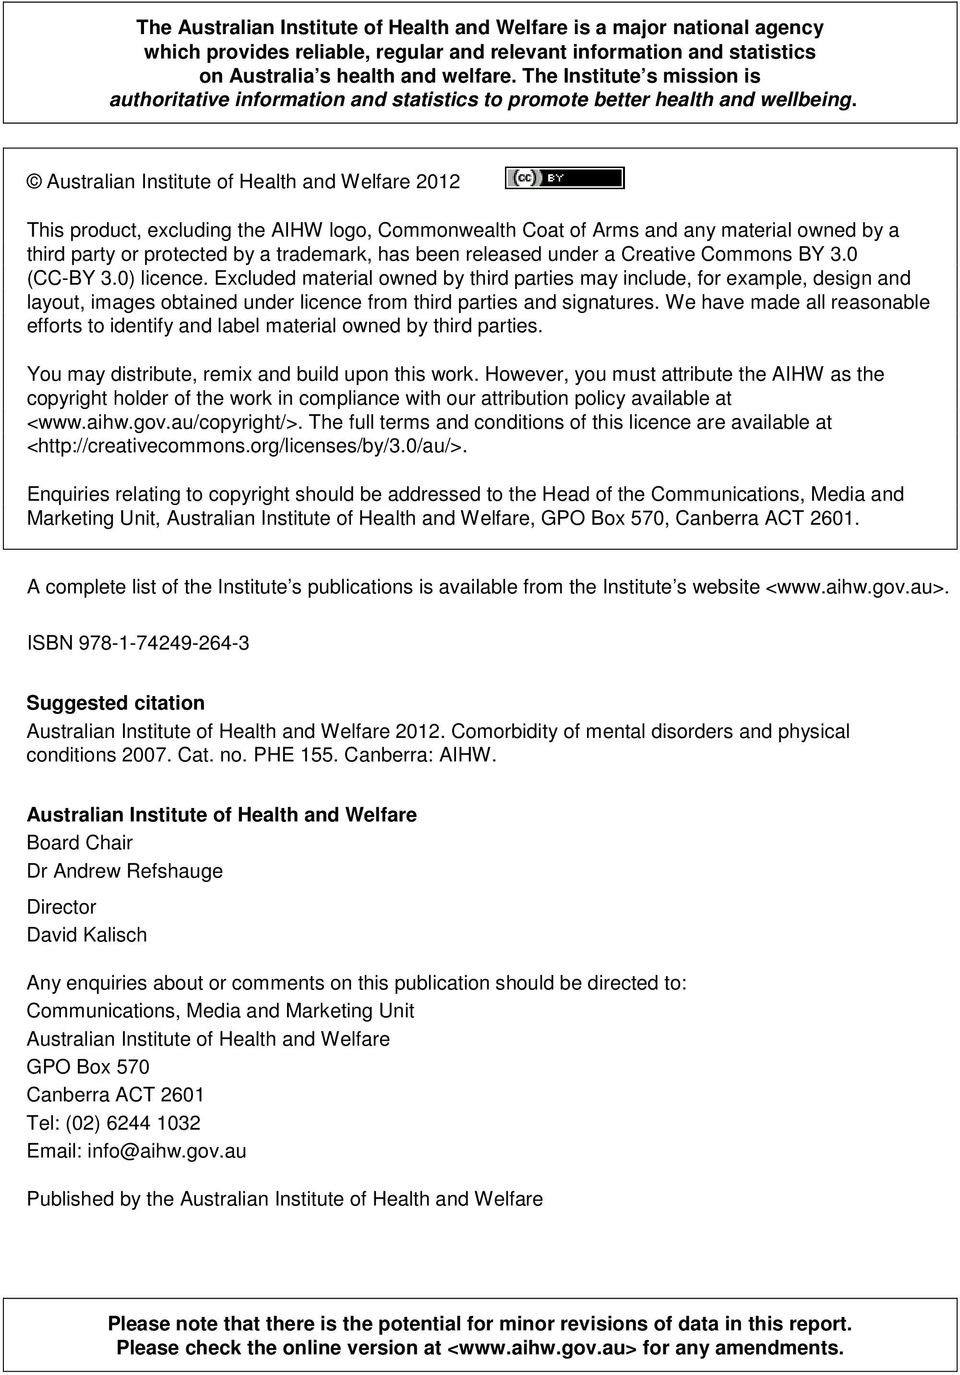 Australian Institute of Health and Welfare 2012 This product, excluding the AIHW logo, Commonwealth Coat of Arms and any material owned by a third party or protected by a trademark, has been released